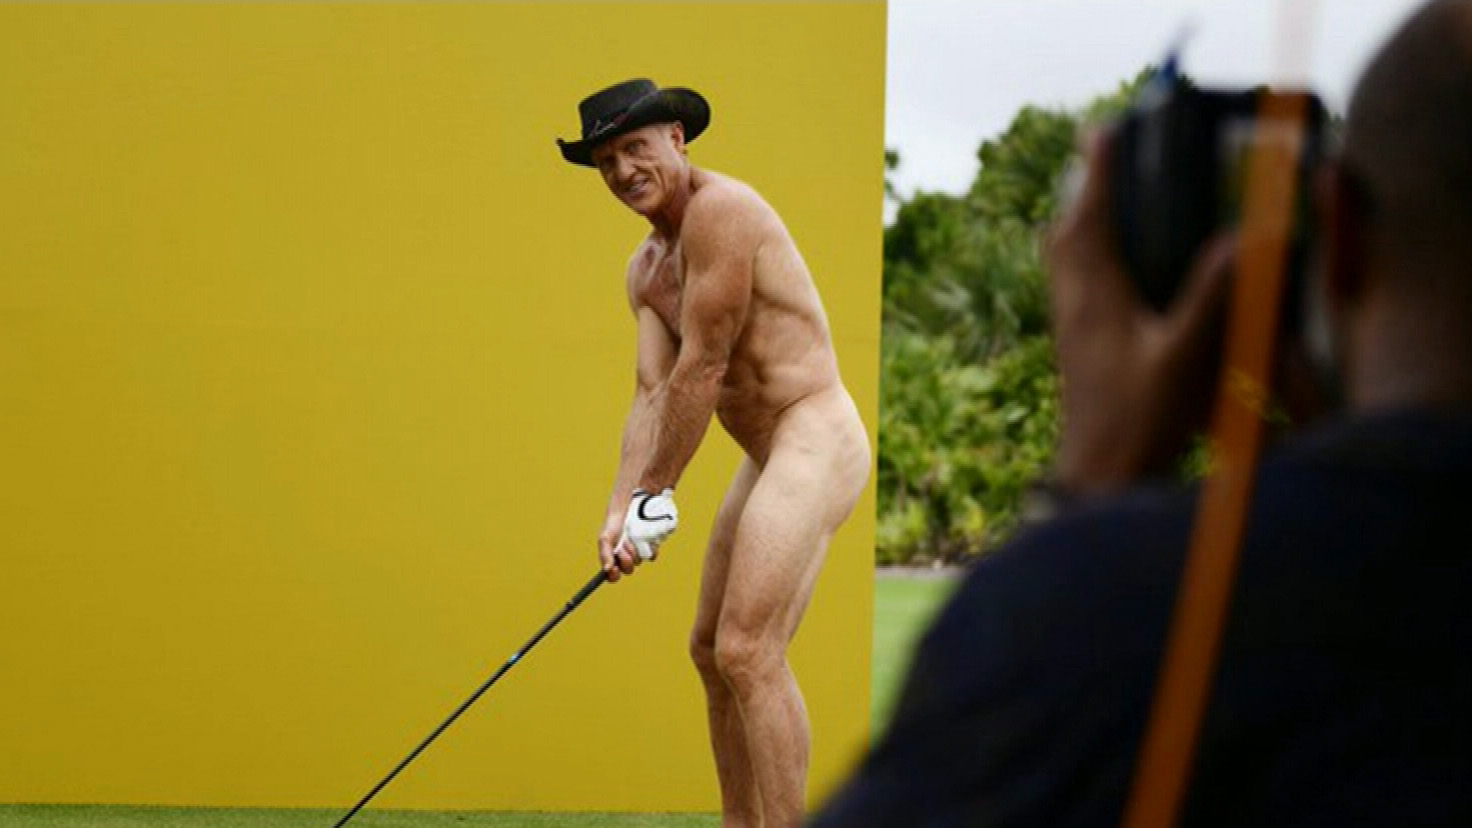 Greg Norman bares all in ESPN magazine